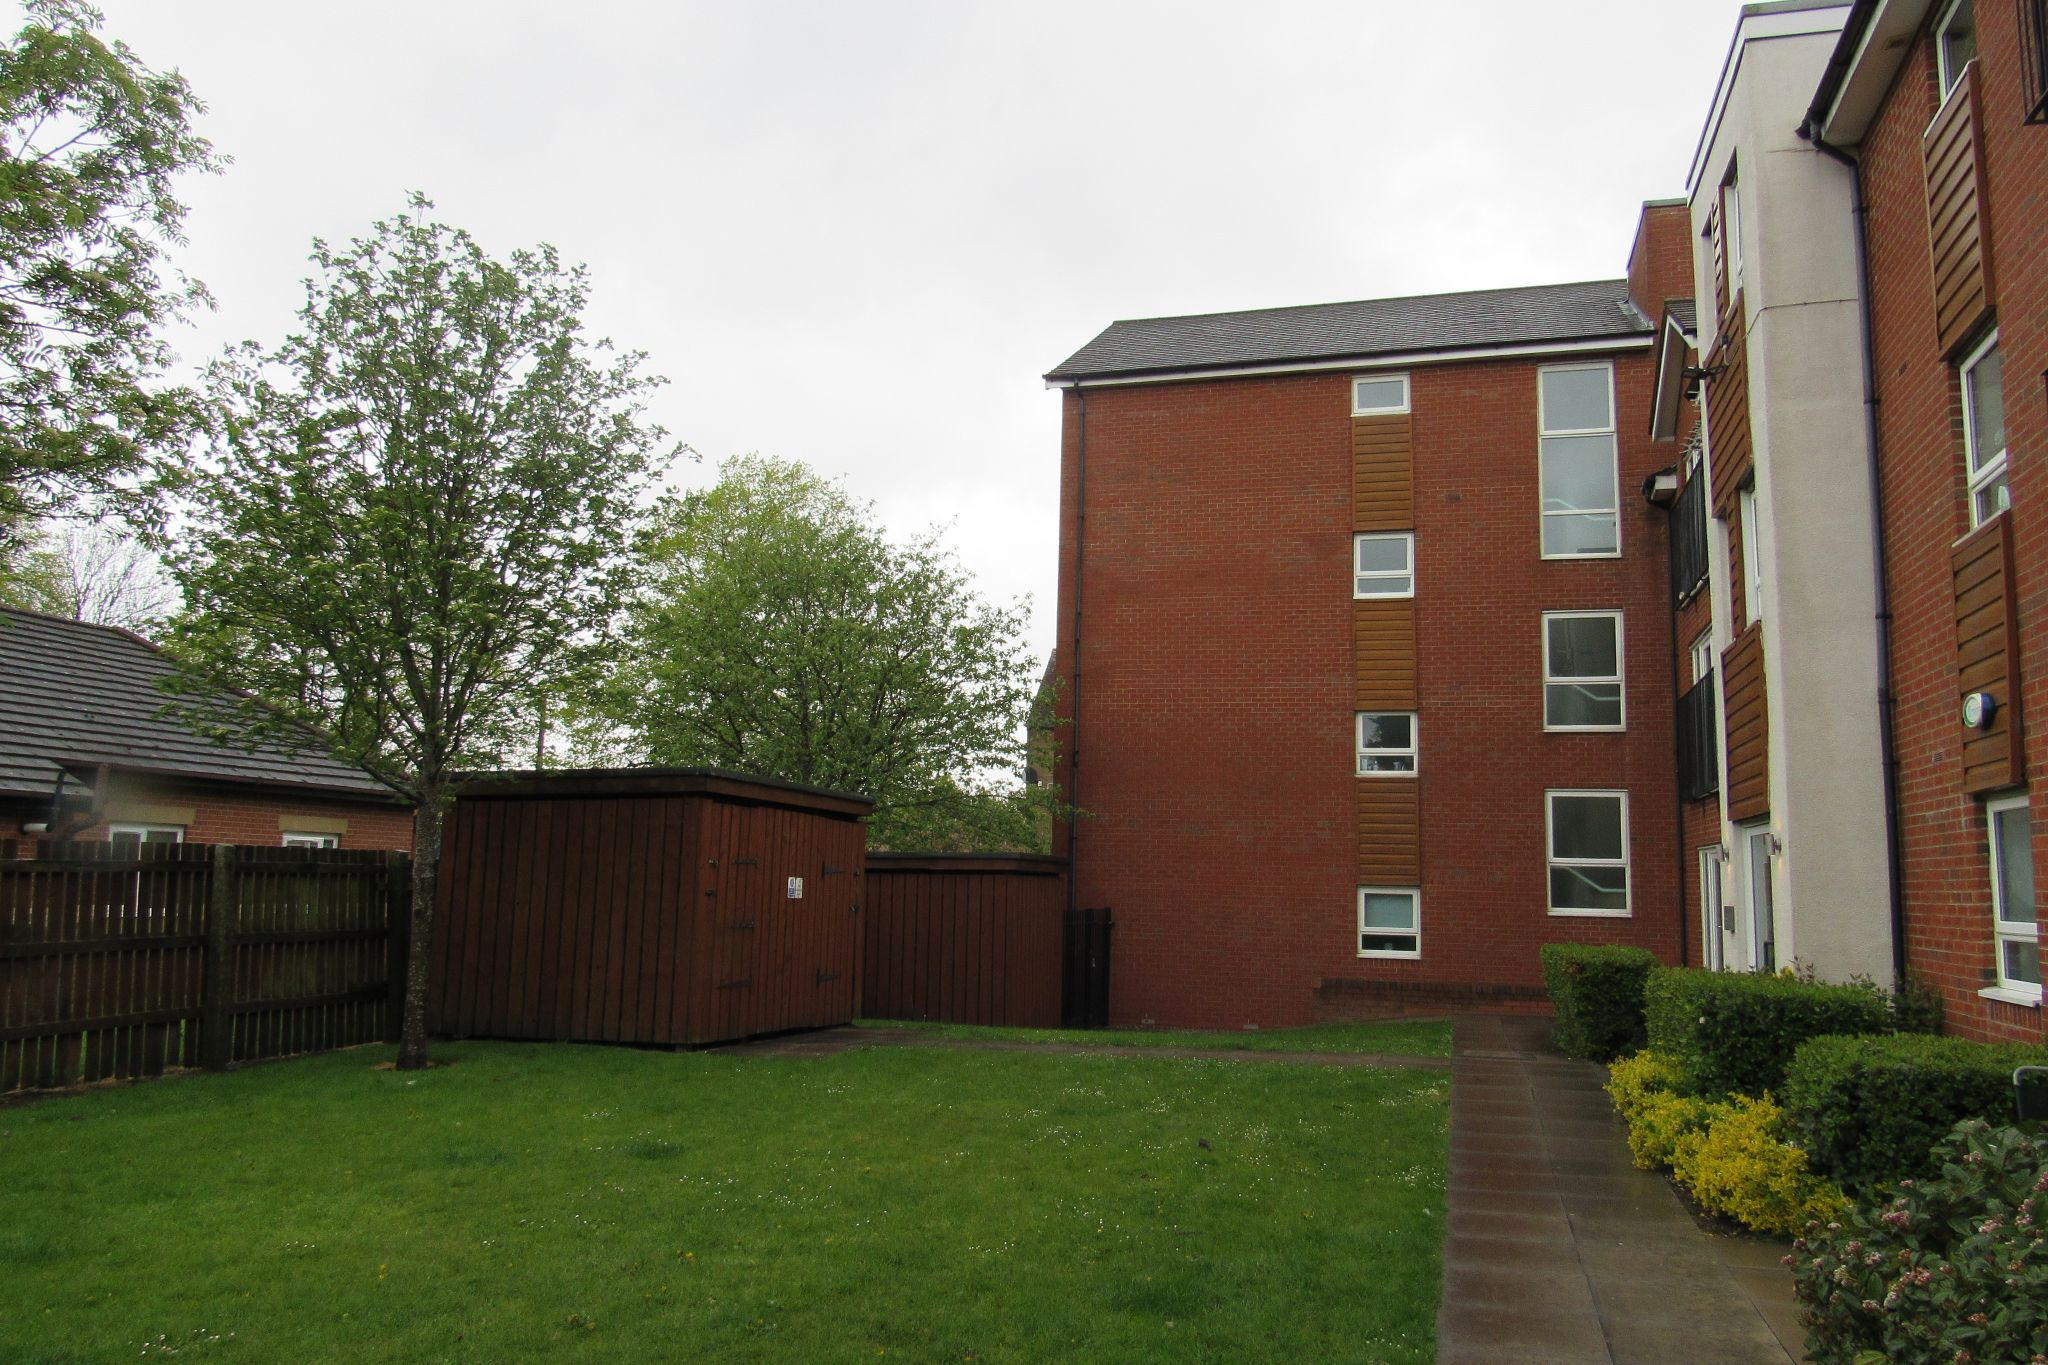 2 bedroom apartment flat/apartment SSTC in Manchester - Photograph 16.